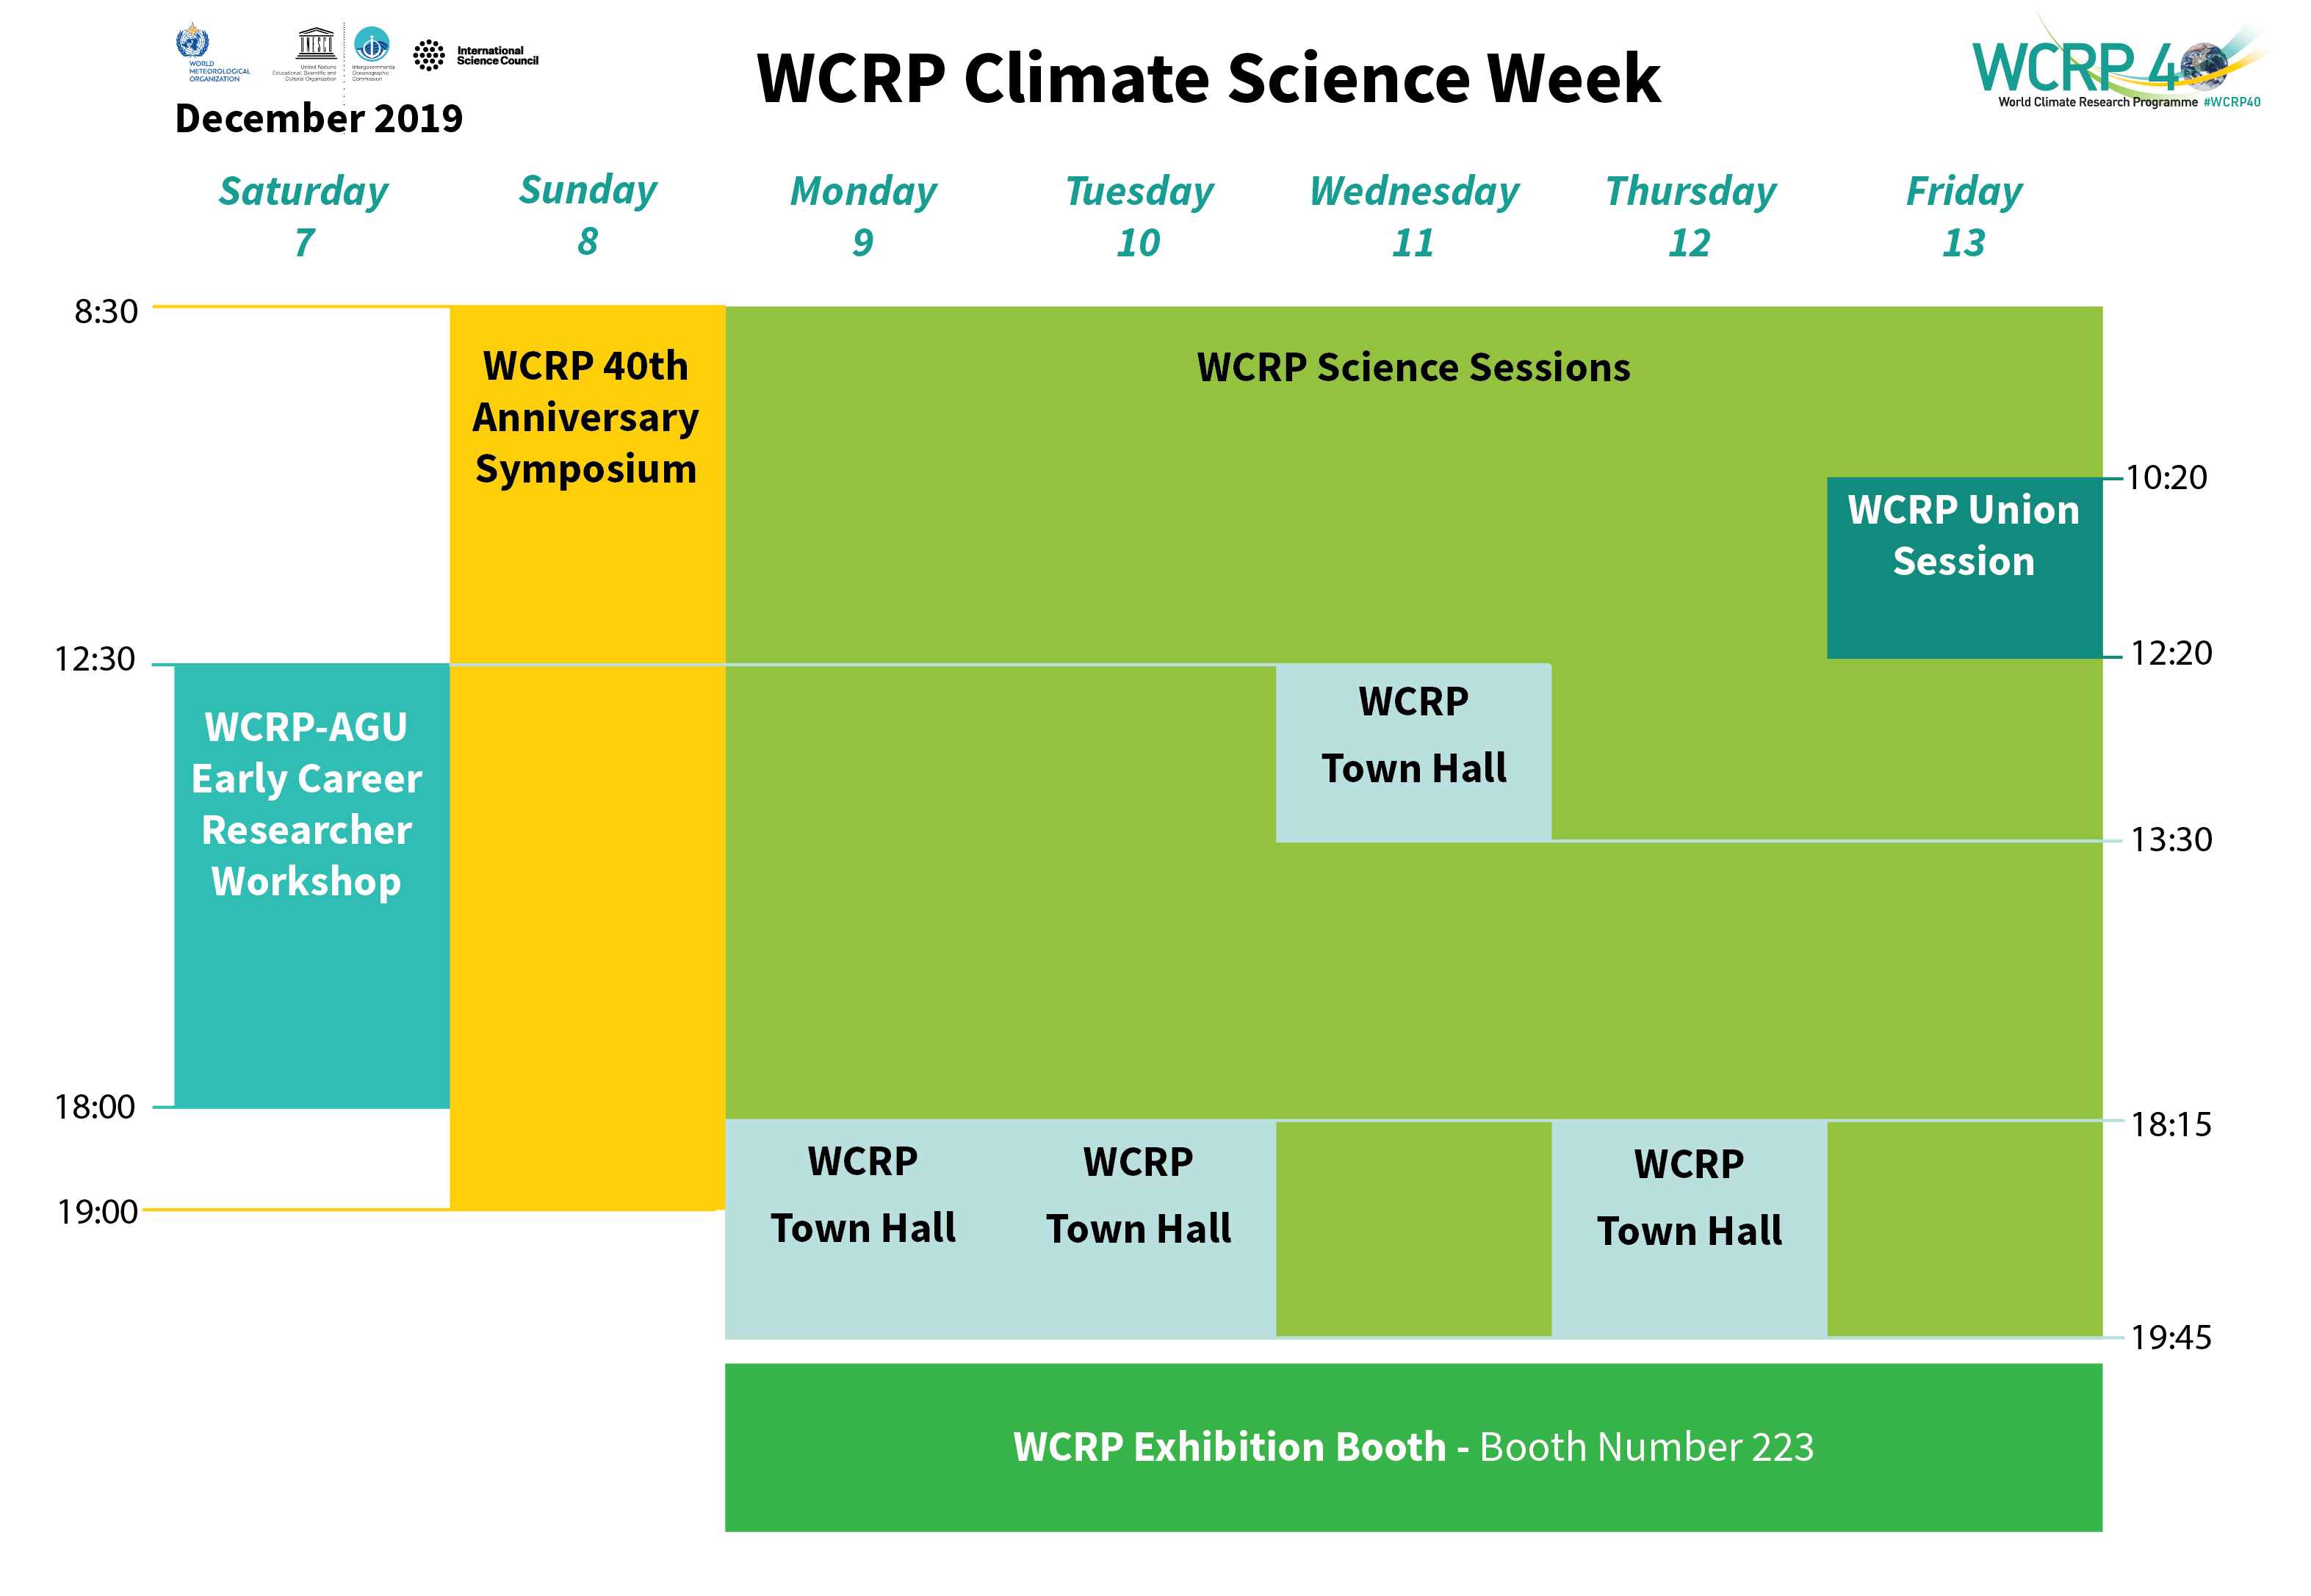 WCRP Climate Science Week Schedule